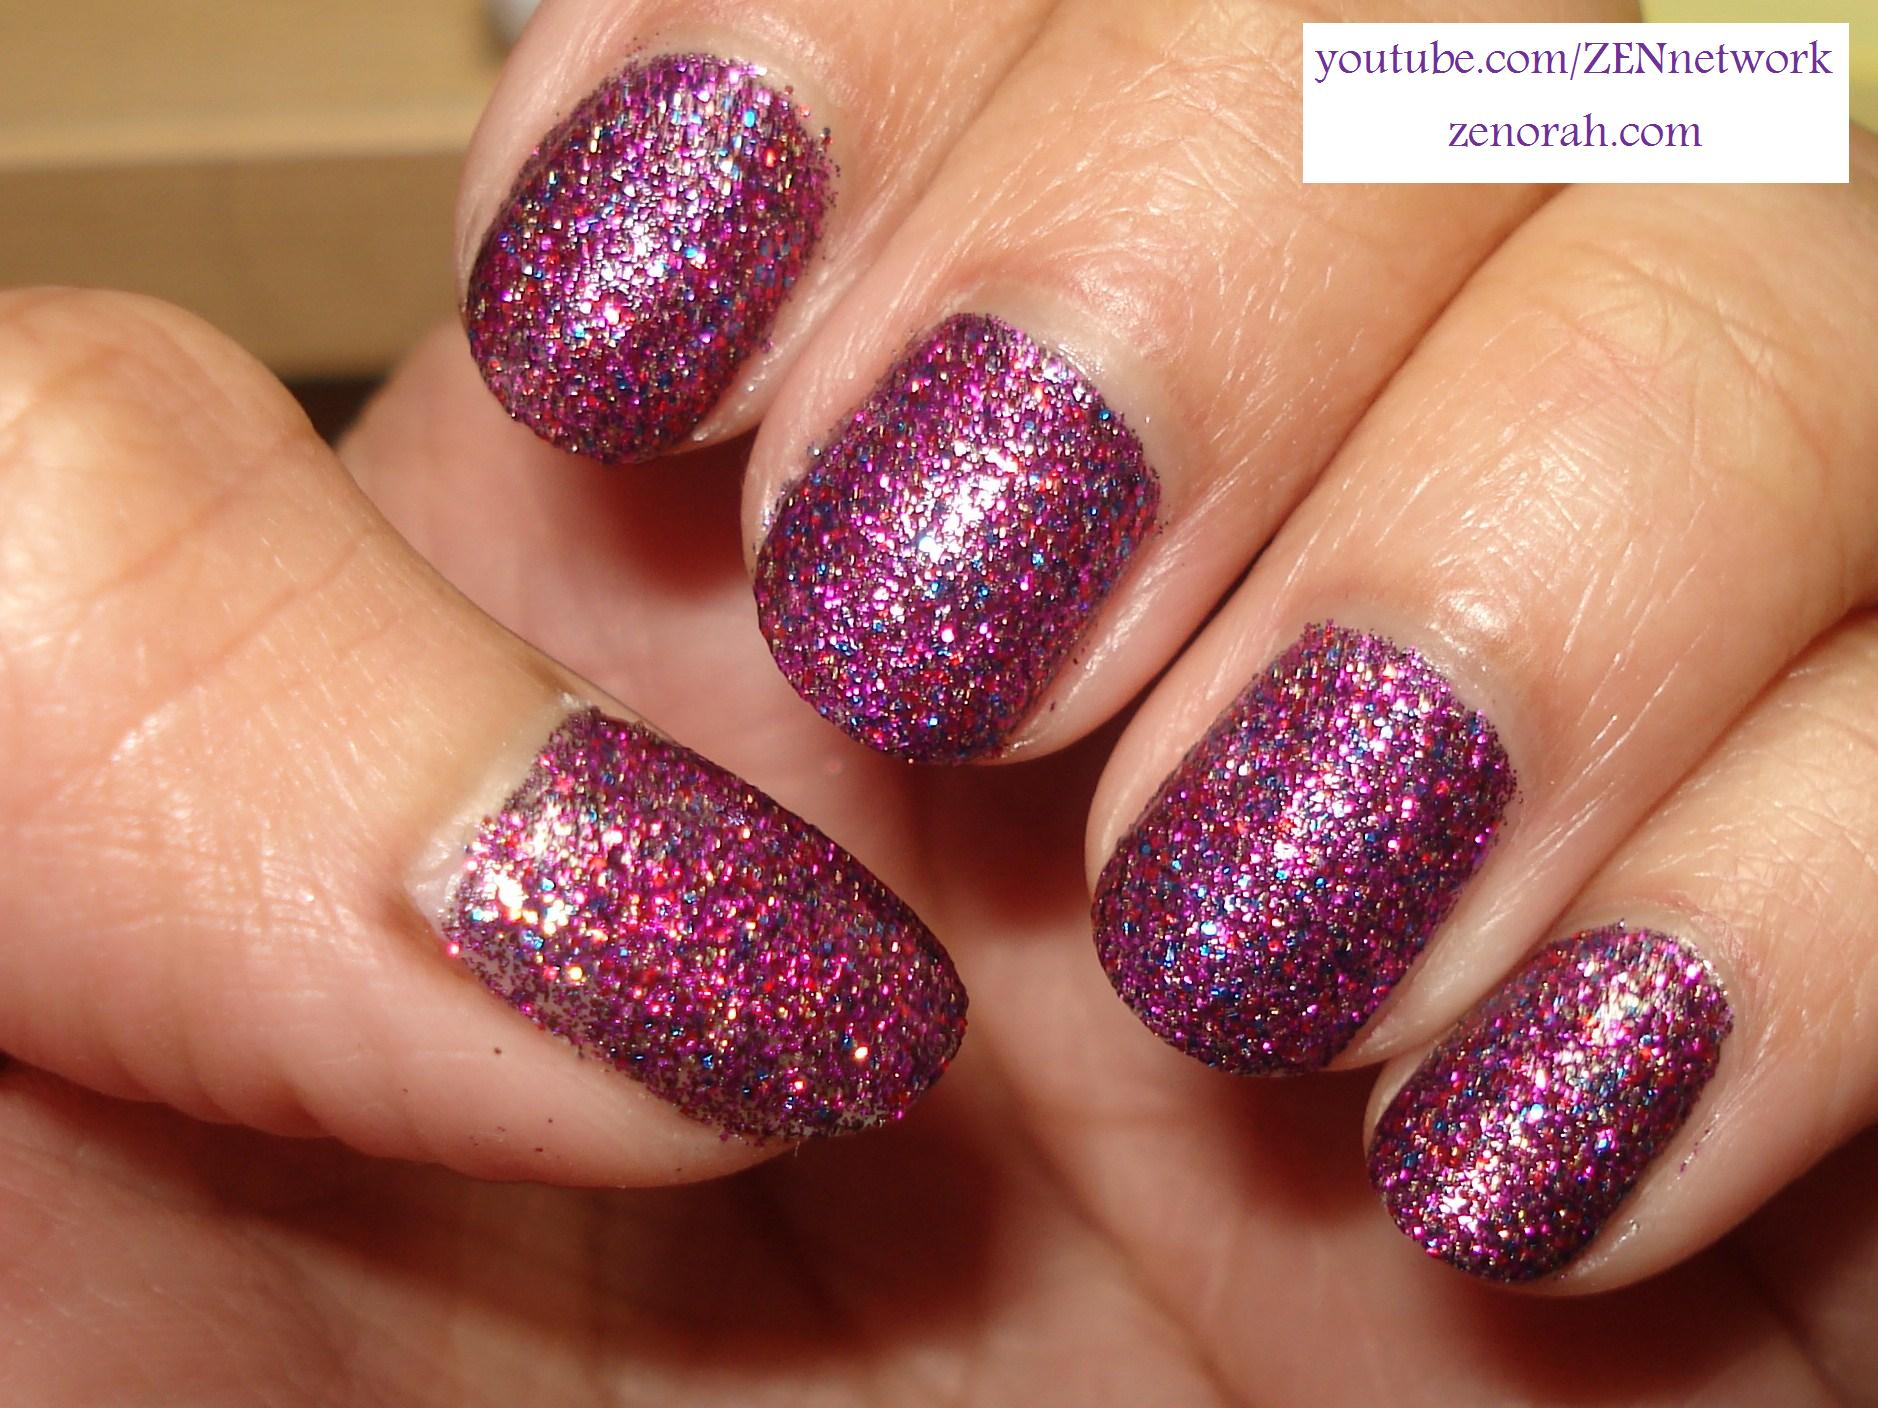 The Awesome Purple nails with glitter Digital Imagery